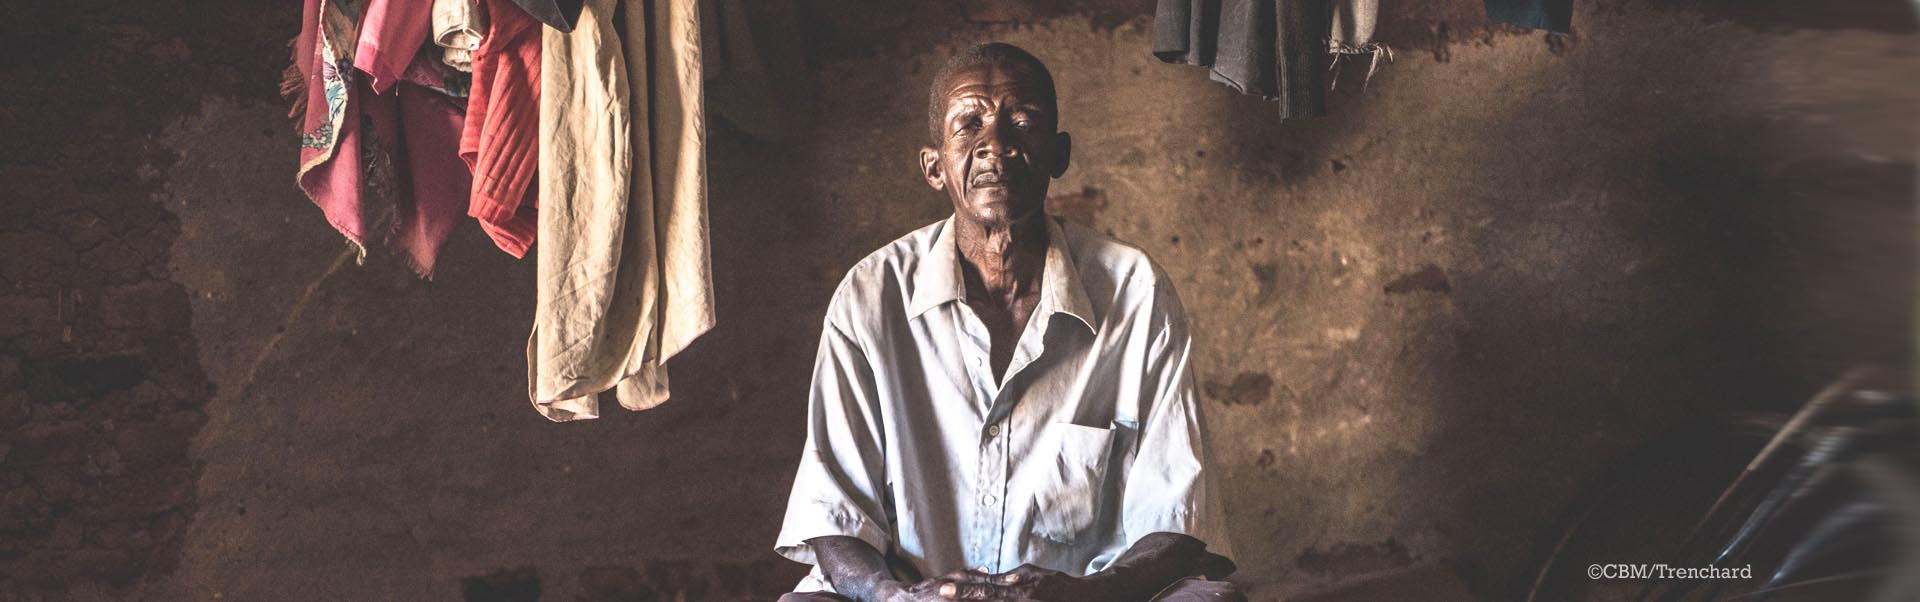 Isiko, 77, finds it difficult to work and support his children's education because of the constant pain and vision problems caused by Trachoma Trichiasis. Isiko, 77, finds it difficult to work and support his children's education because of the constant pain and vision problems caused by Trachoma Trichiasis.